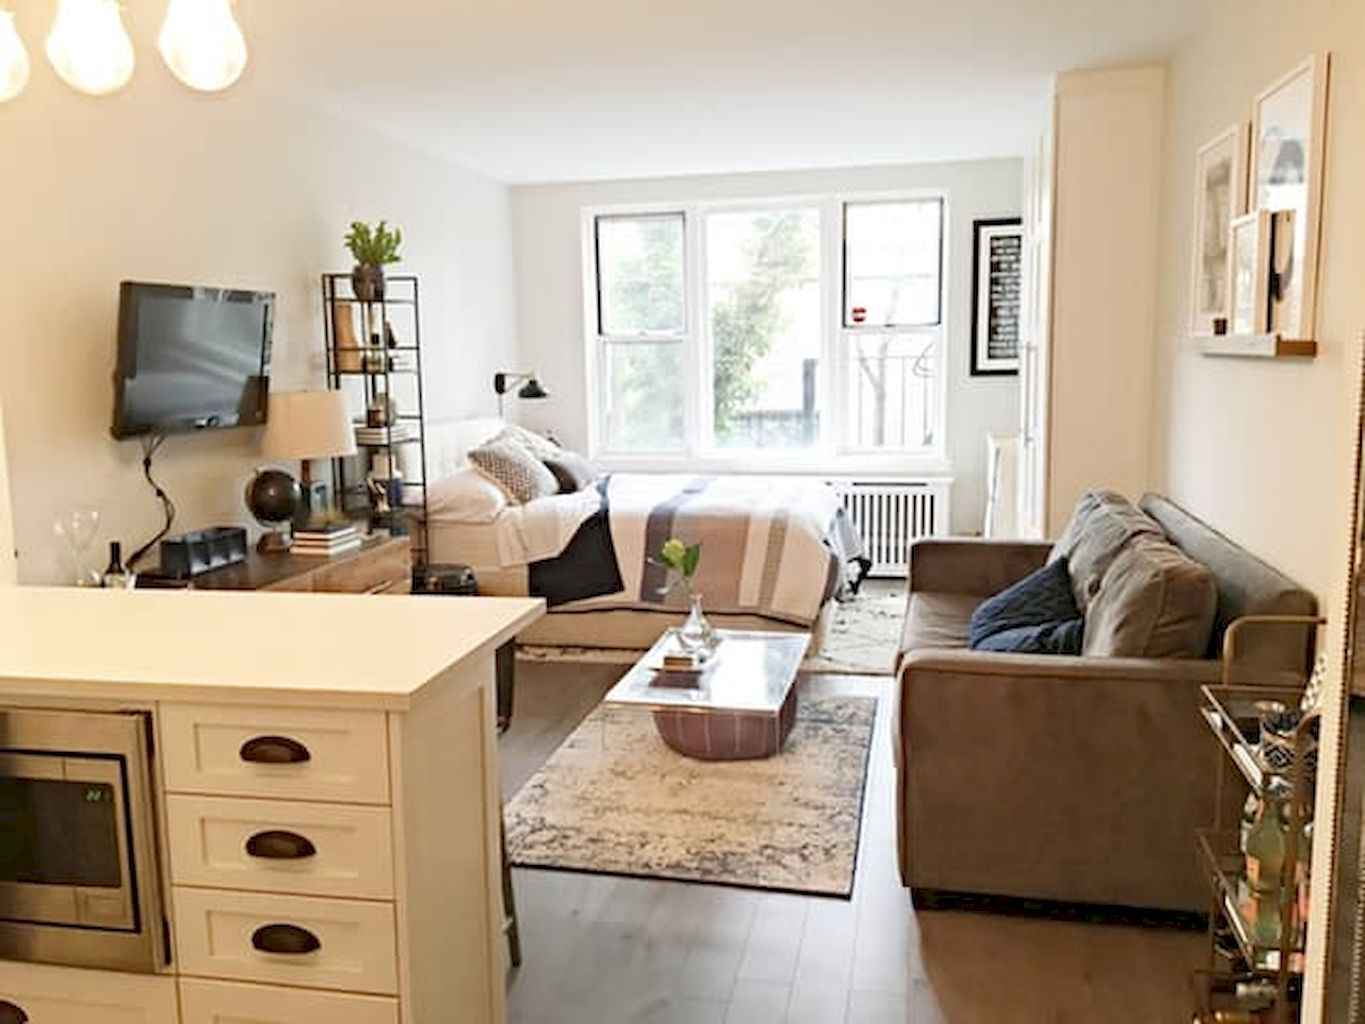 Cool small apartment decorating ideas on a budget (43)